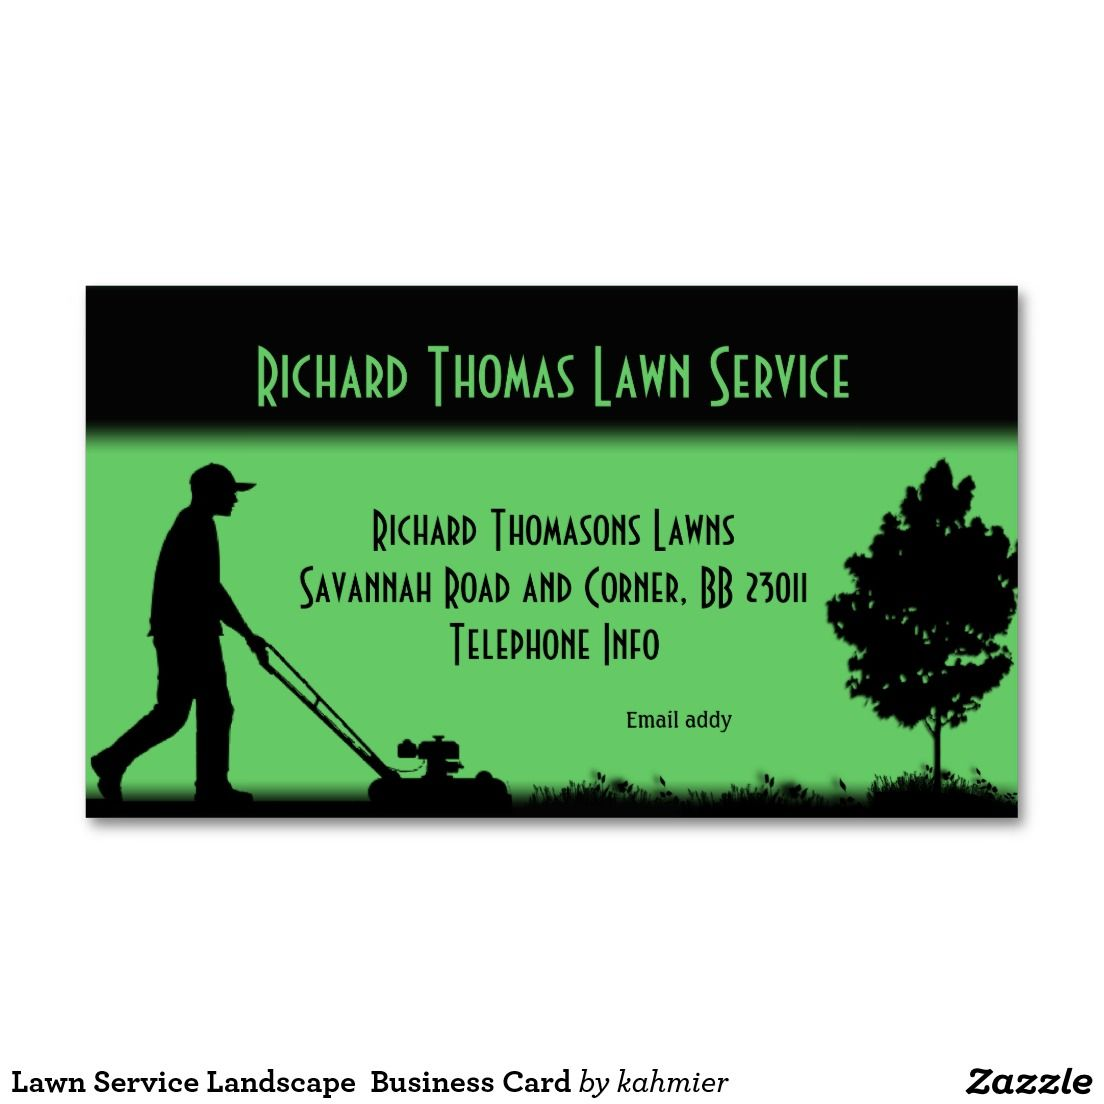 Lawn Service Landscape Business Card | All Things Zazzle | Pinterest ...